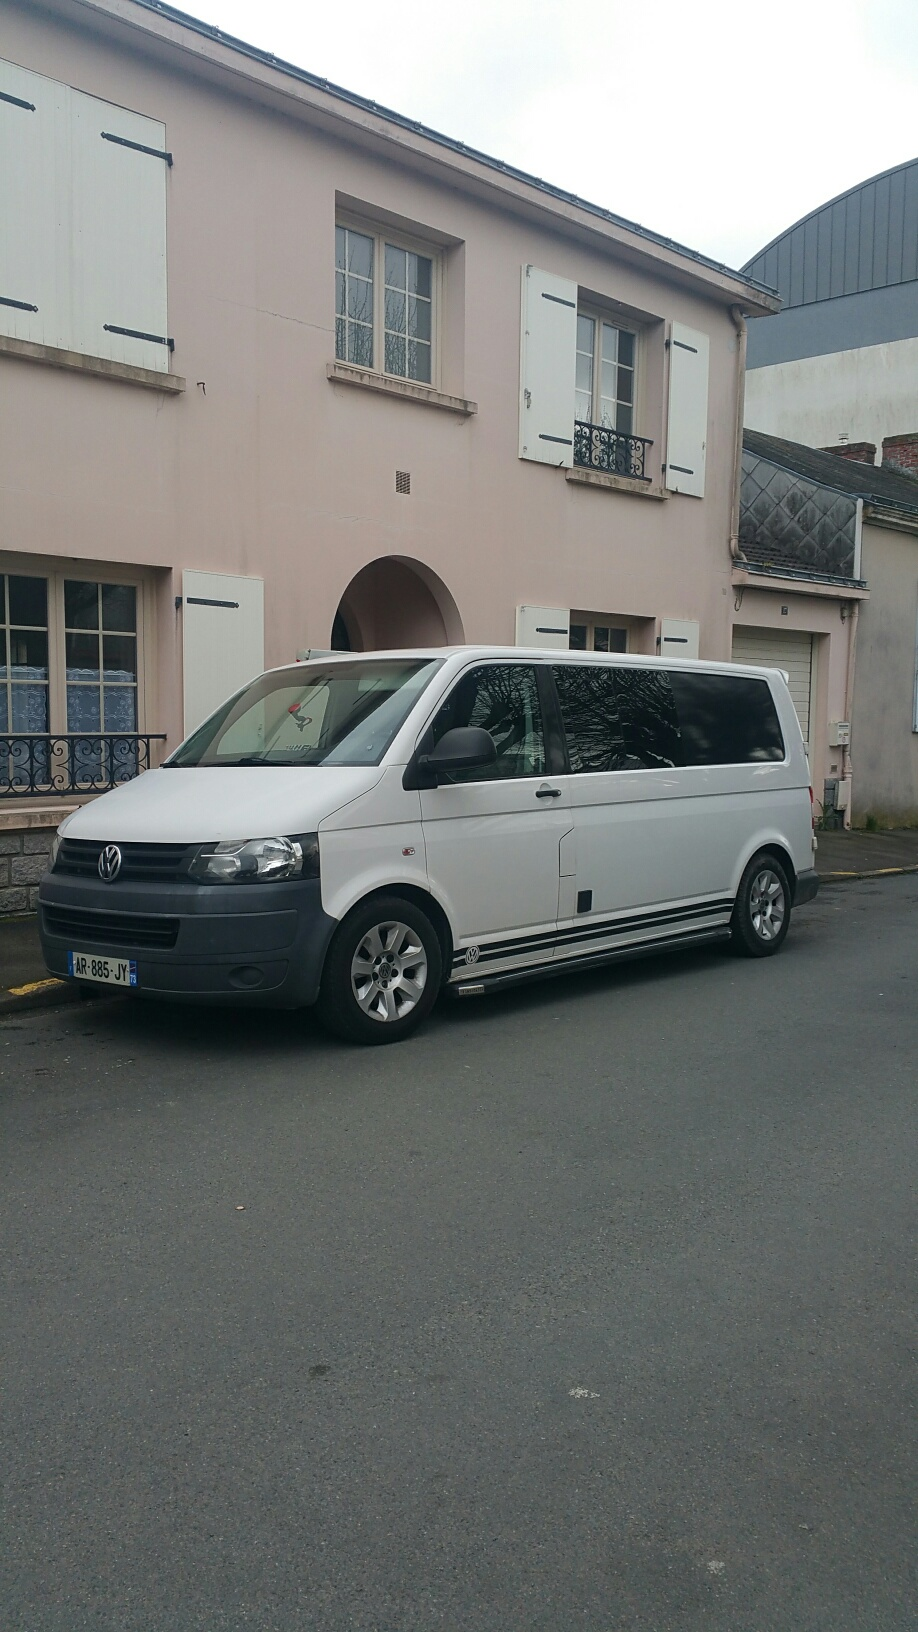 [VENDU] TRANSPORTER VW T5 AMENAGE KAPAM (H1 L2) 6 pl CG 20180410